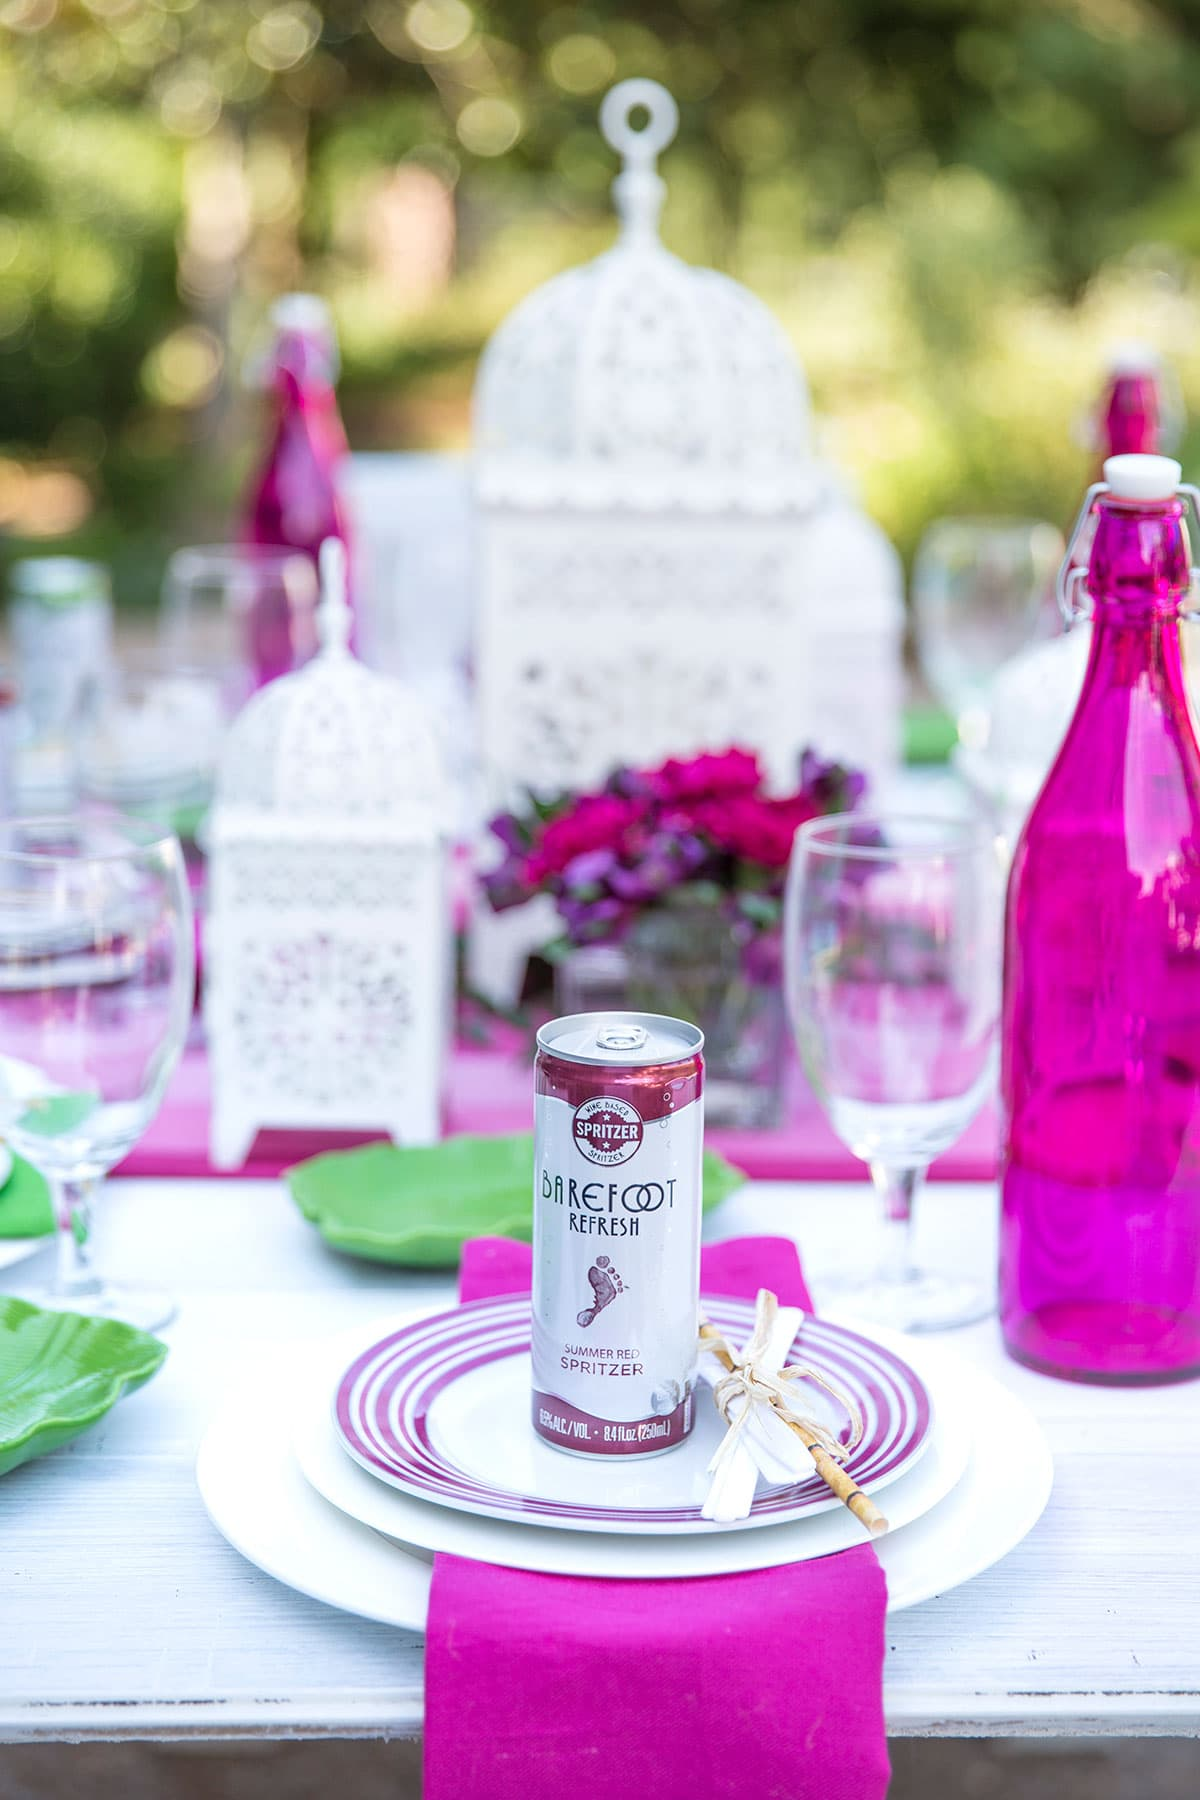 Tips for stylish summer soirees!